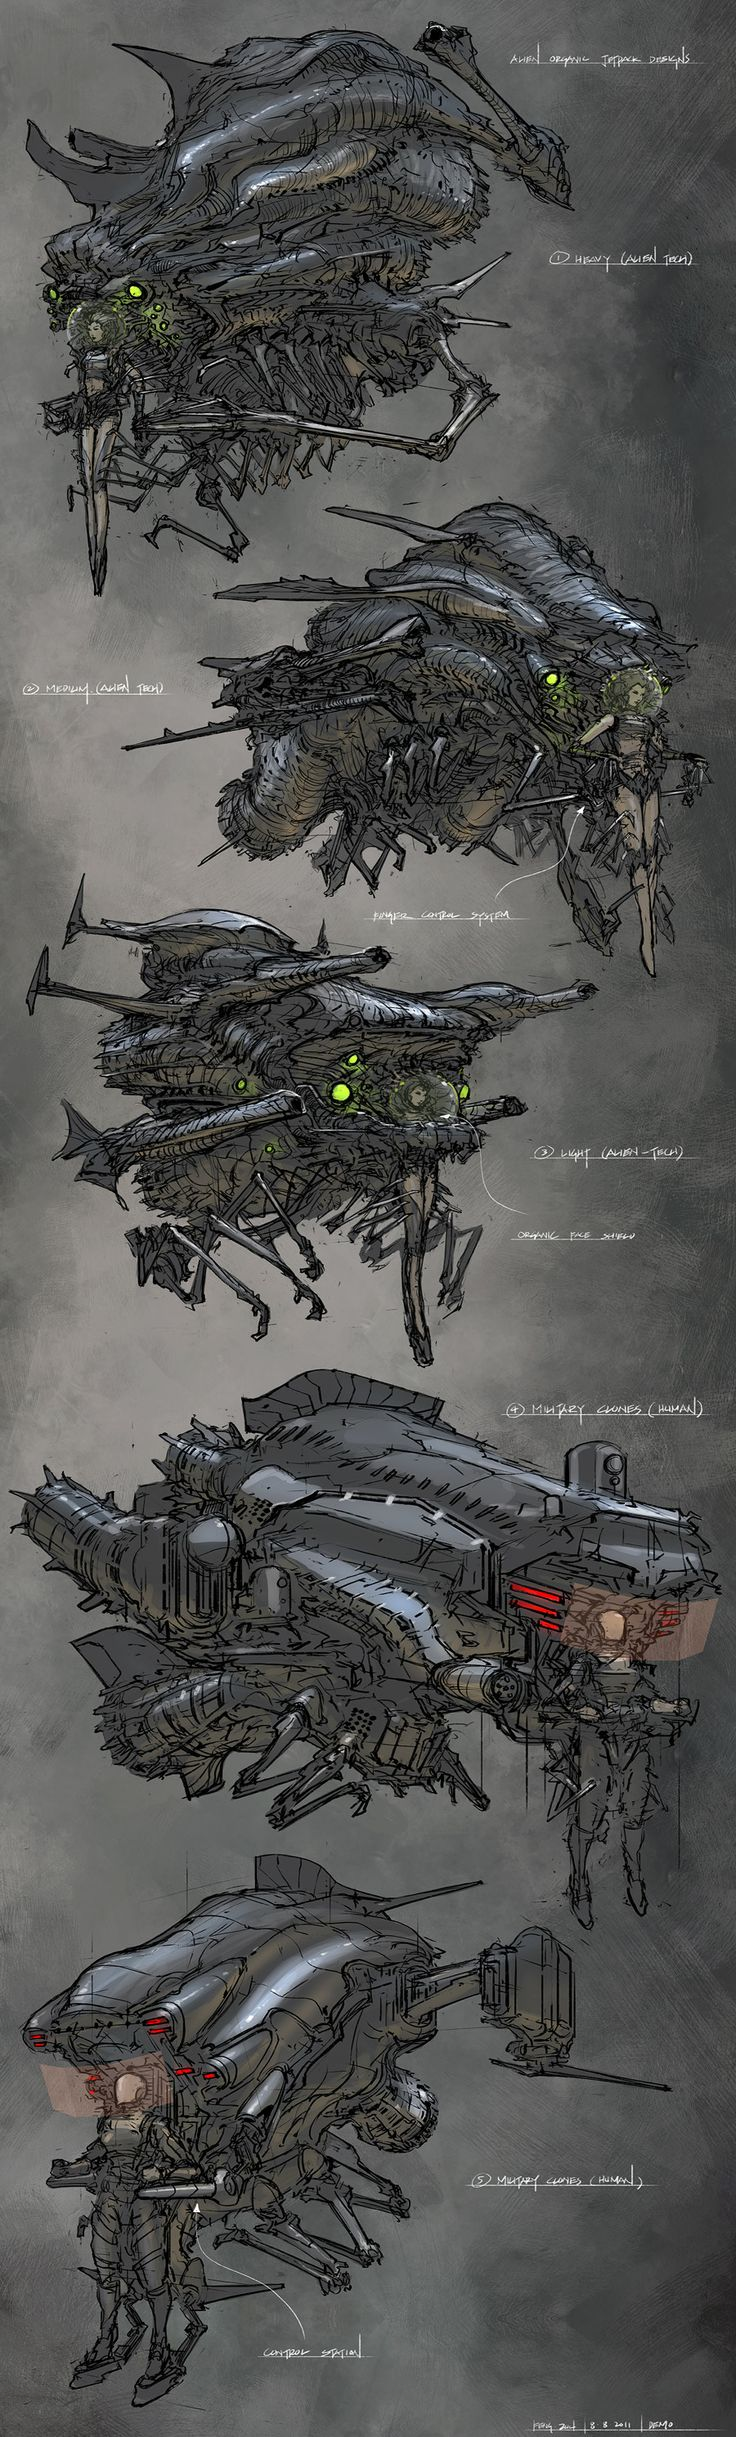 Feng Zhu living ship art. F-ing sick and awesome.